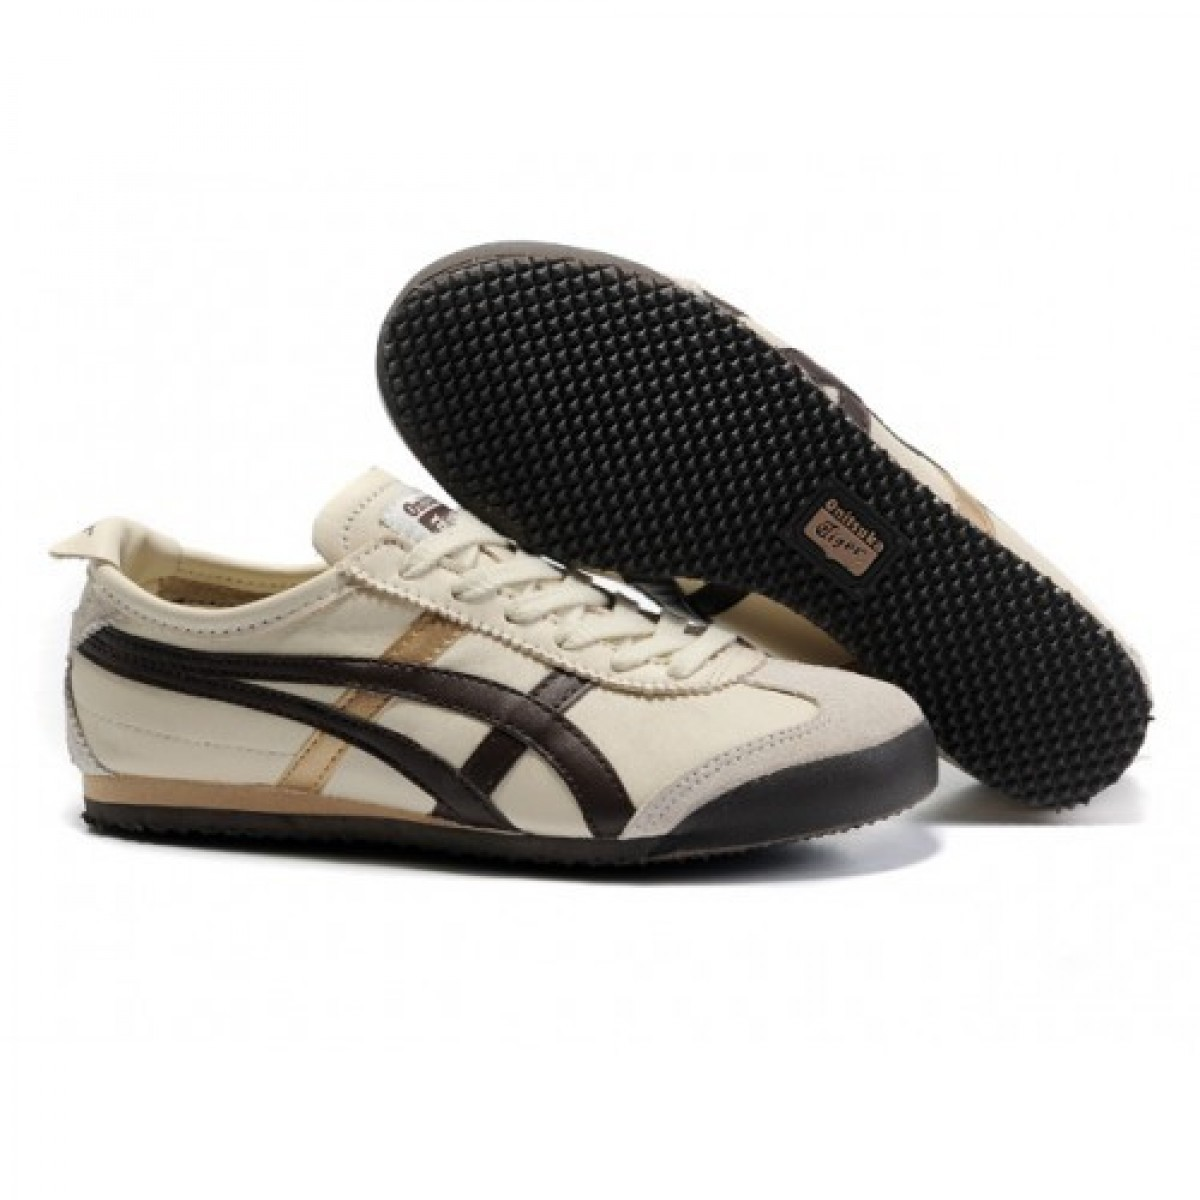 Onitsuka Tiger Chaussures Running Soldes et prix pas cher